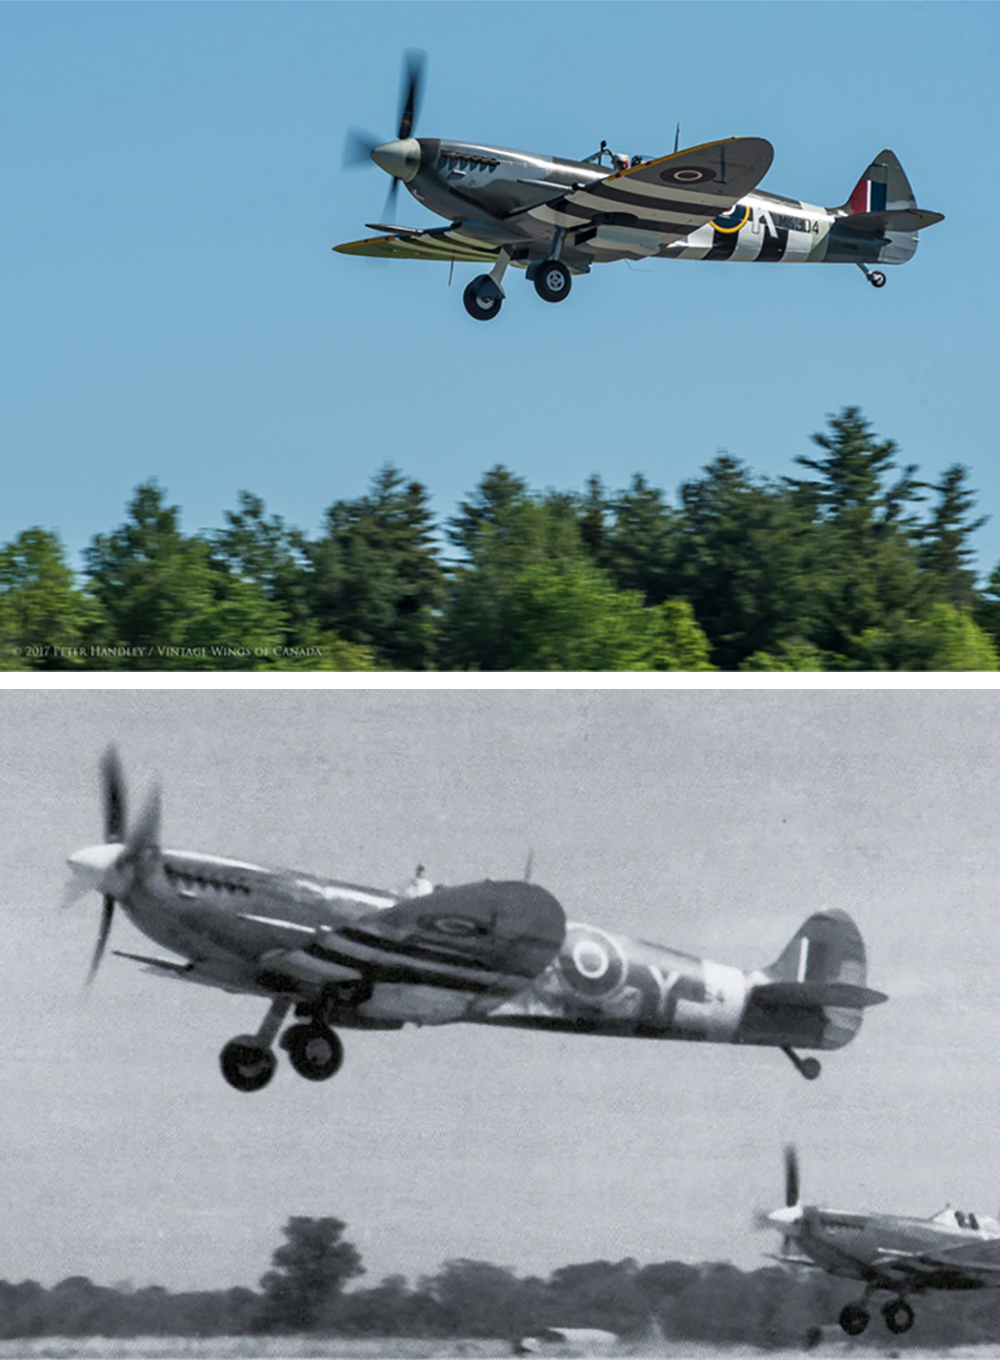 As pilot John Aitken climbs the Roseland Spitfire out on June 7, 2017 (top), we are reminded of a day 73 years ago when a pair of 442 Squadron Spitfires (bottom) climbed to do battle. The vintage photo was crucial in helping Vintage Wings of Canada  determine the markings that would be painted on TE294. PHOTOS: Top, Peter Handley; Bottom: from the Collection of Peter Arnold